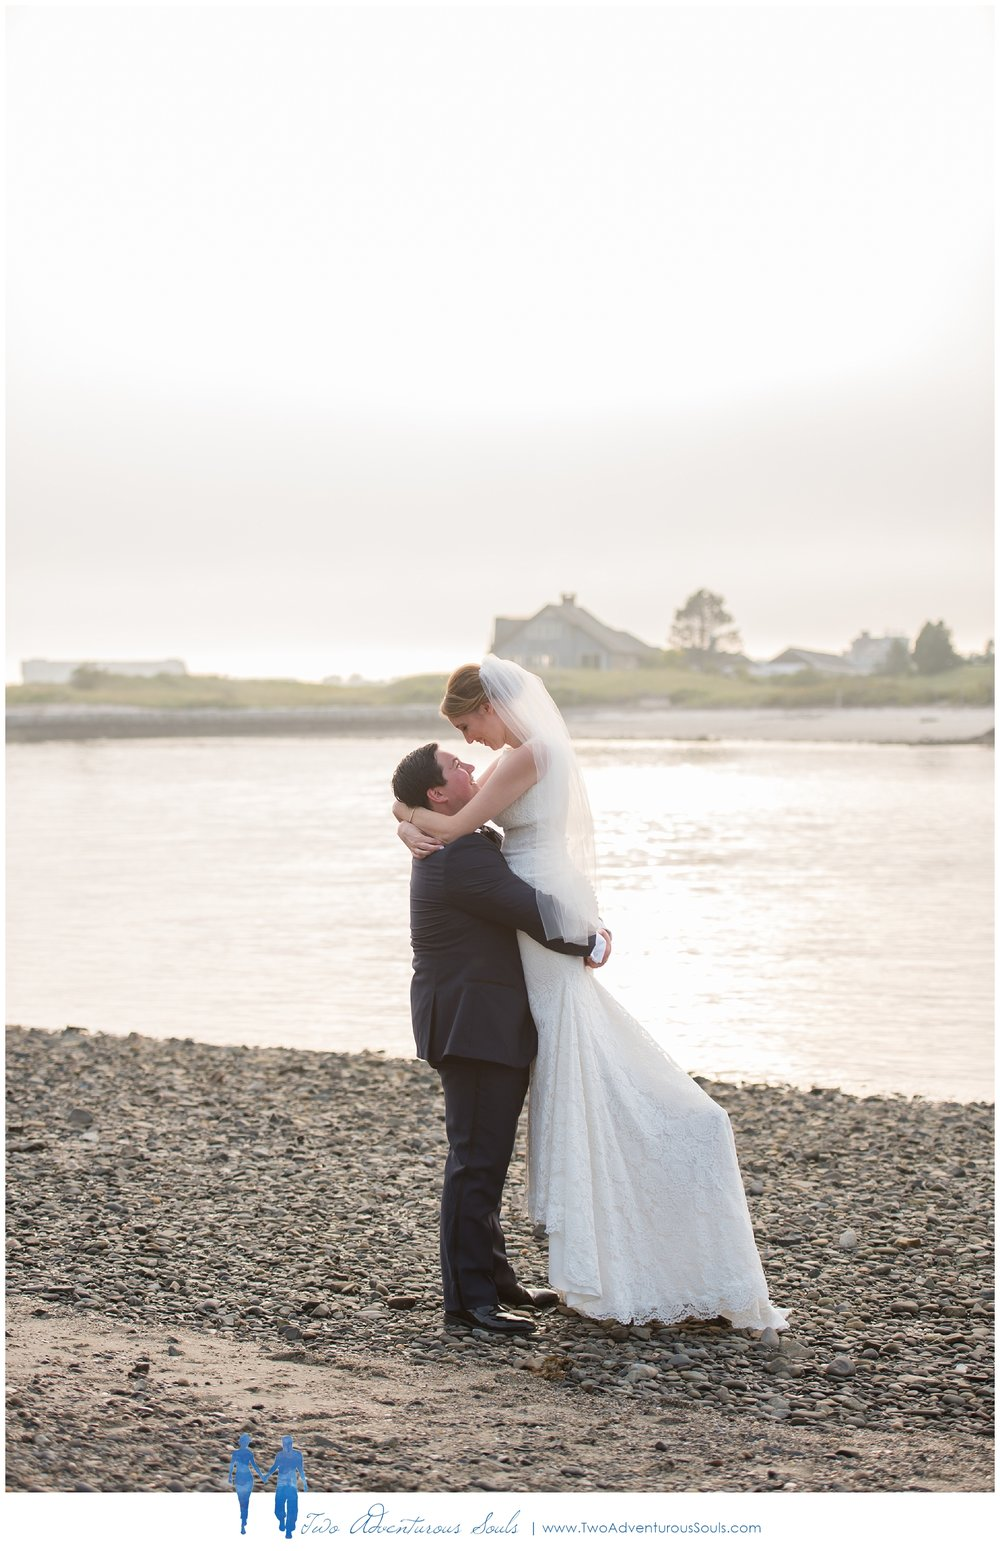 Rebecca + Dylan on September 16, 2017 ♥ Two Adventurous Souls at Breakwater Inn (Kennebunkport, ME)